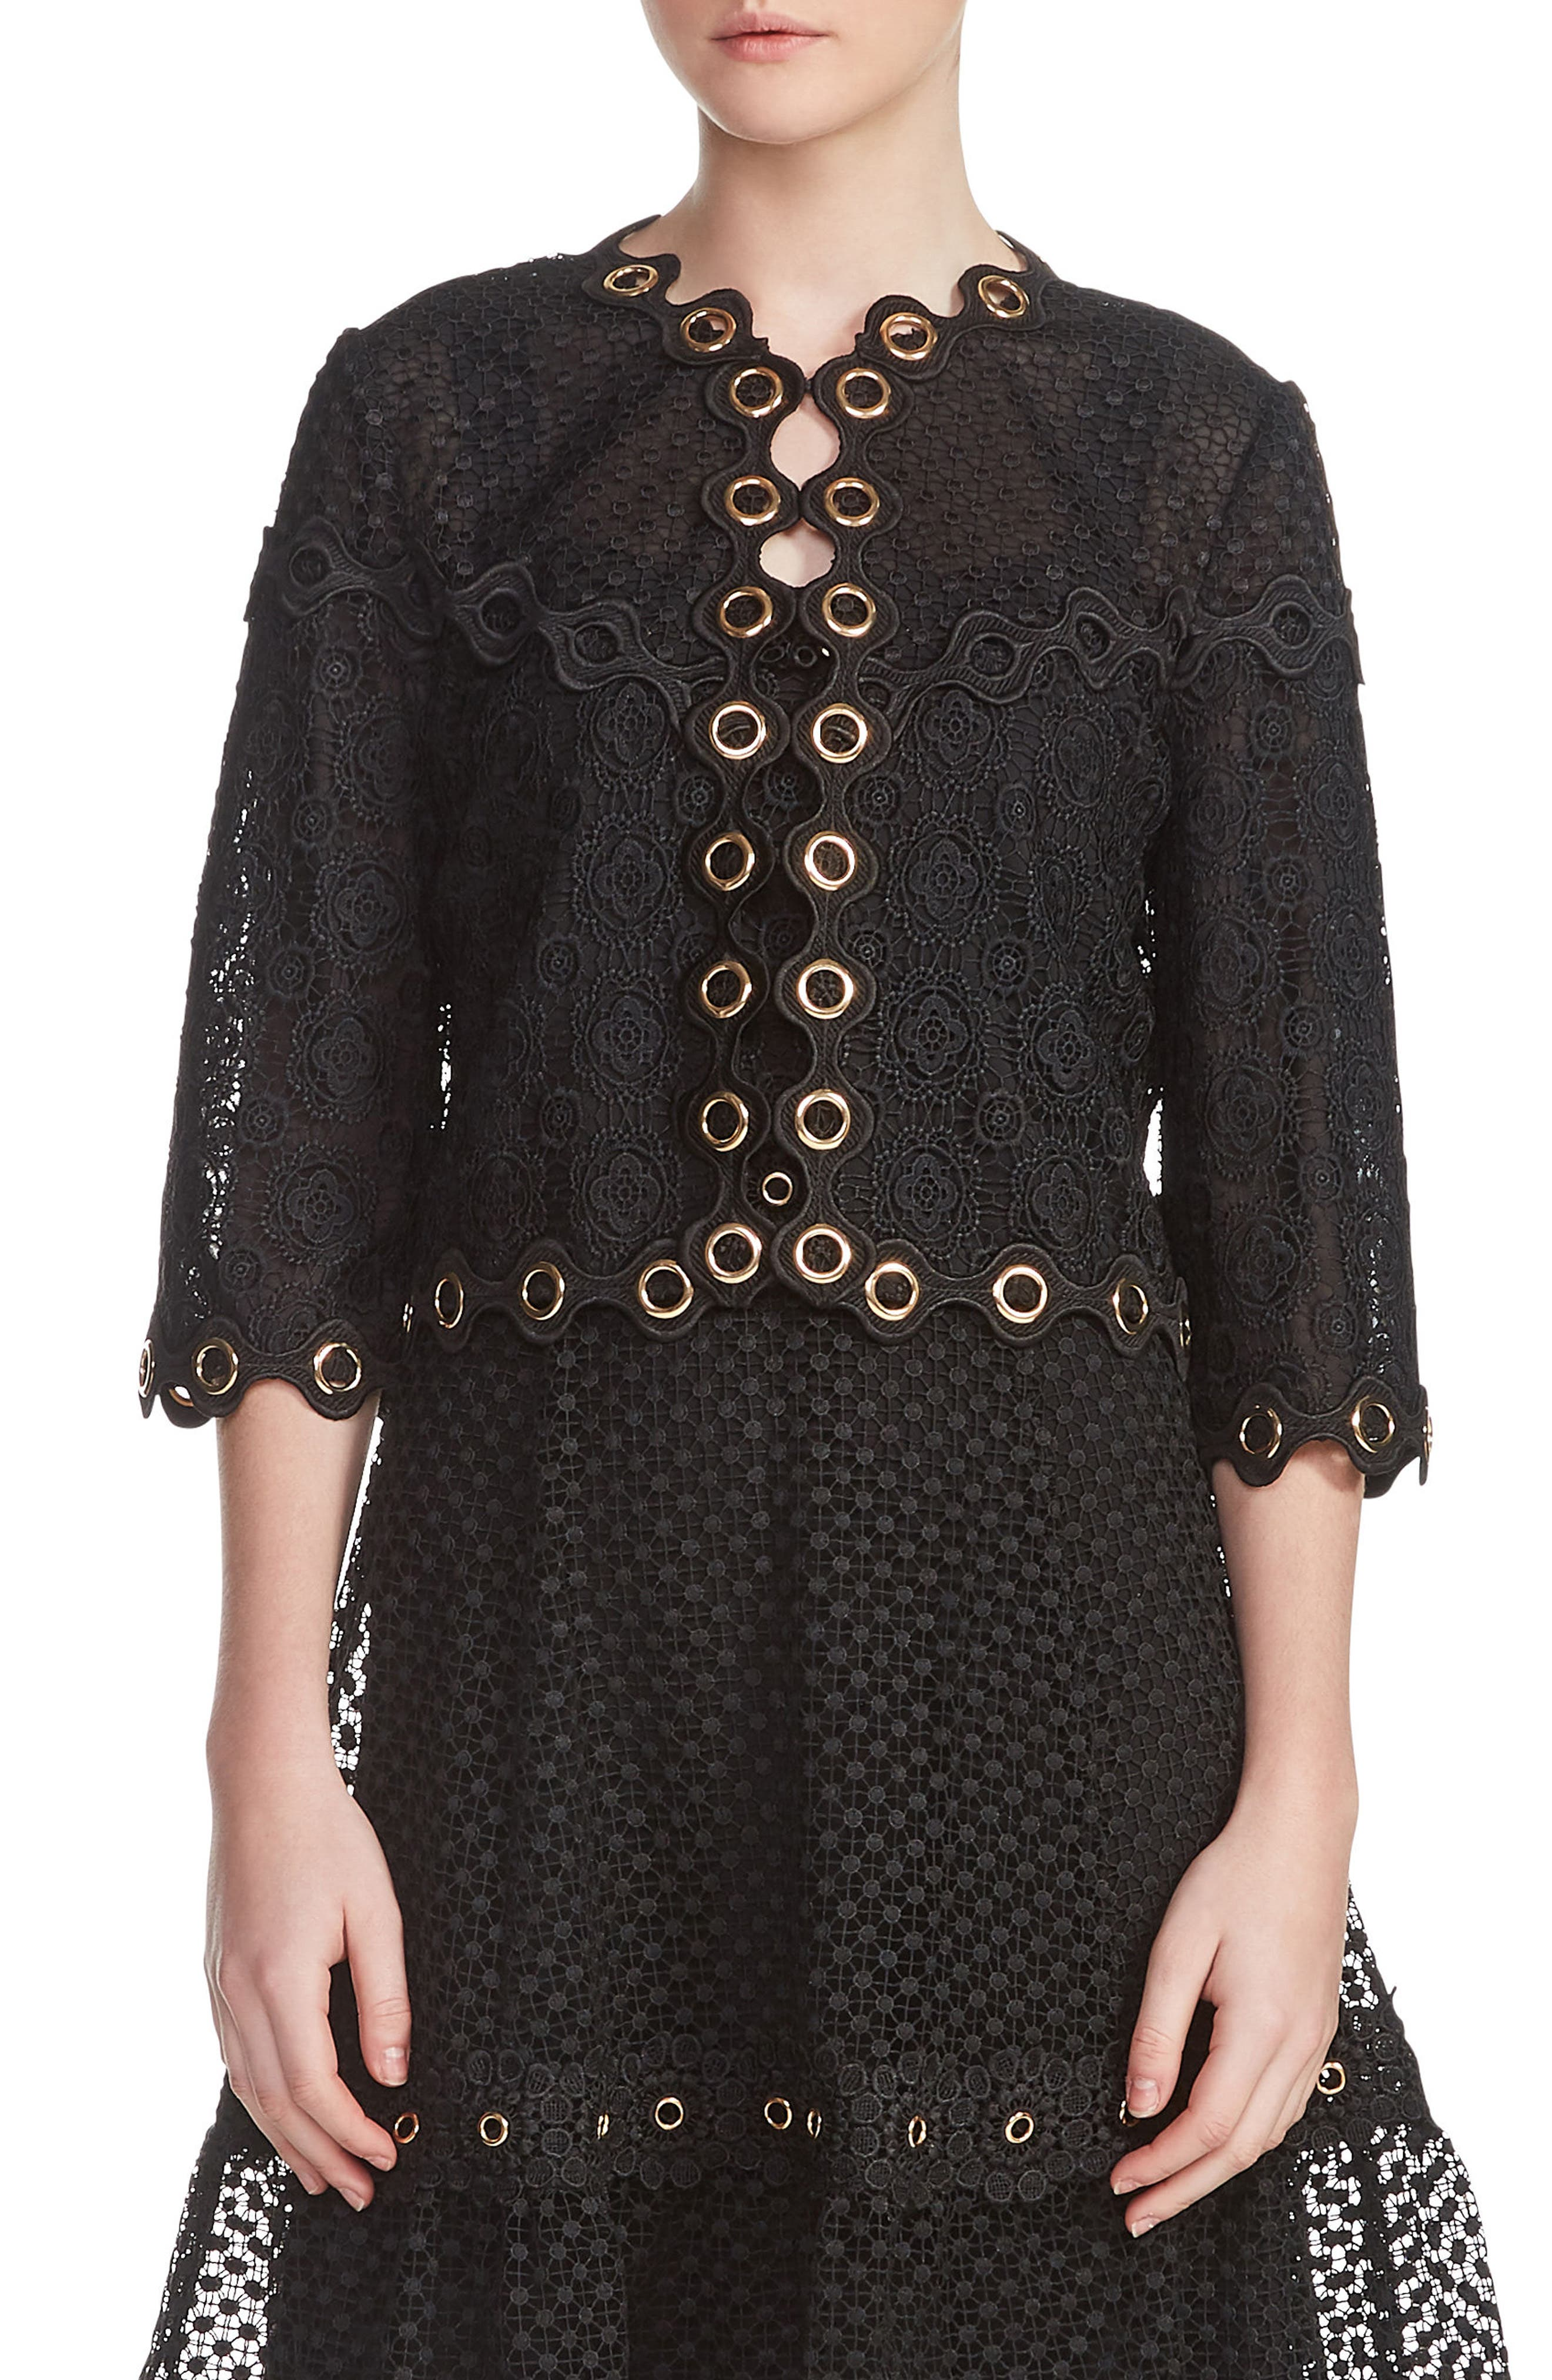 Grommet Trim Lace Jacket,                         Main,                         color, Black